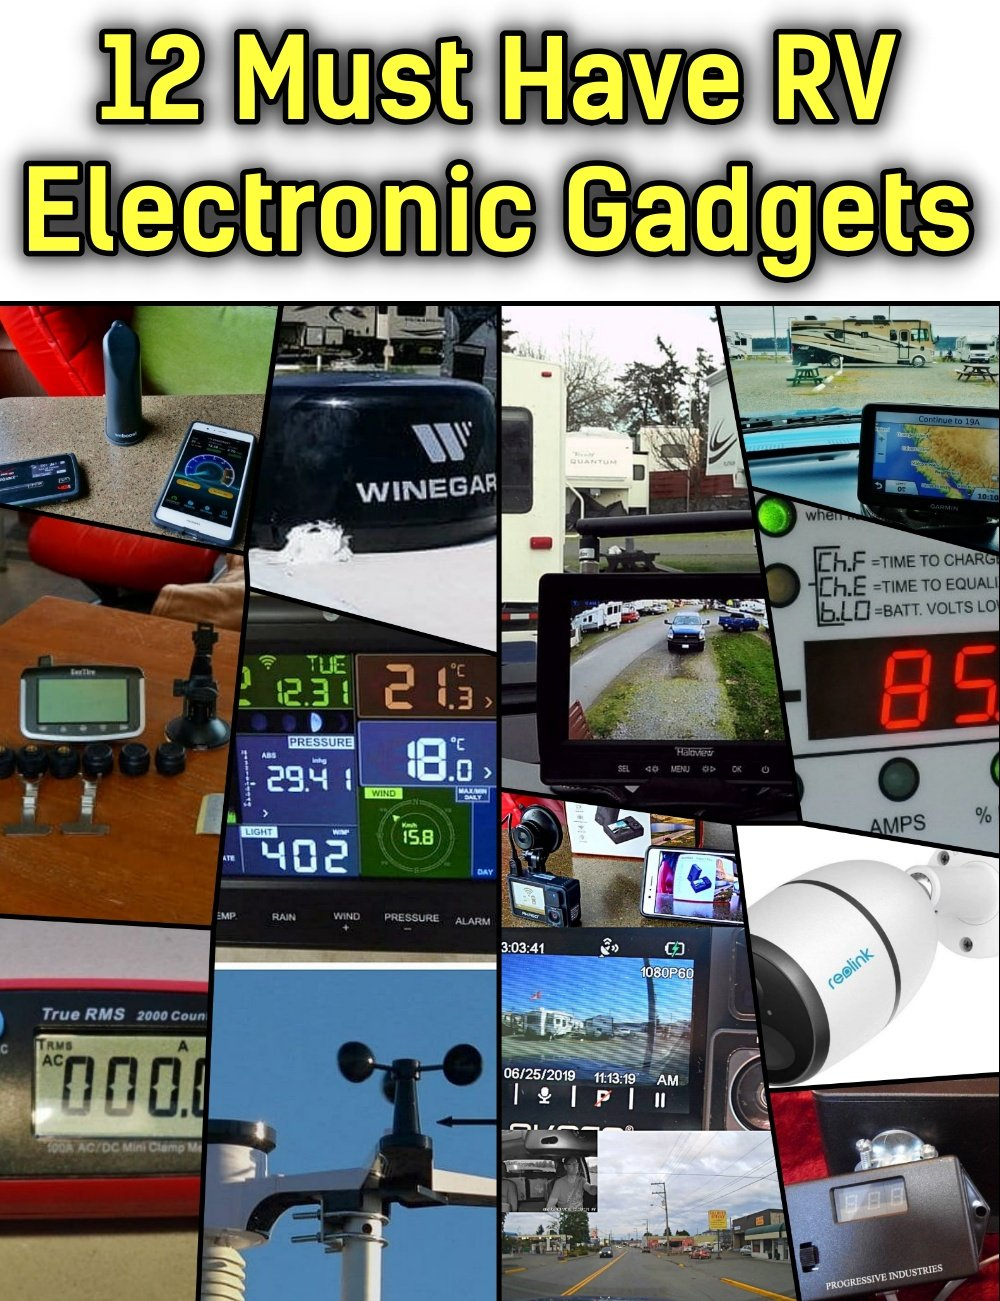 12 Must Have RV Electronics Gadgets and Gear